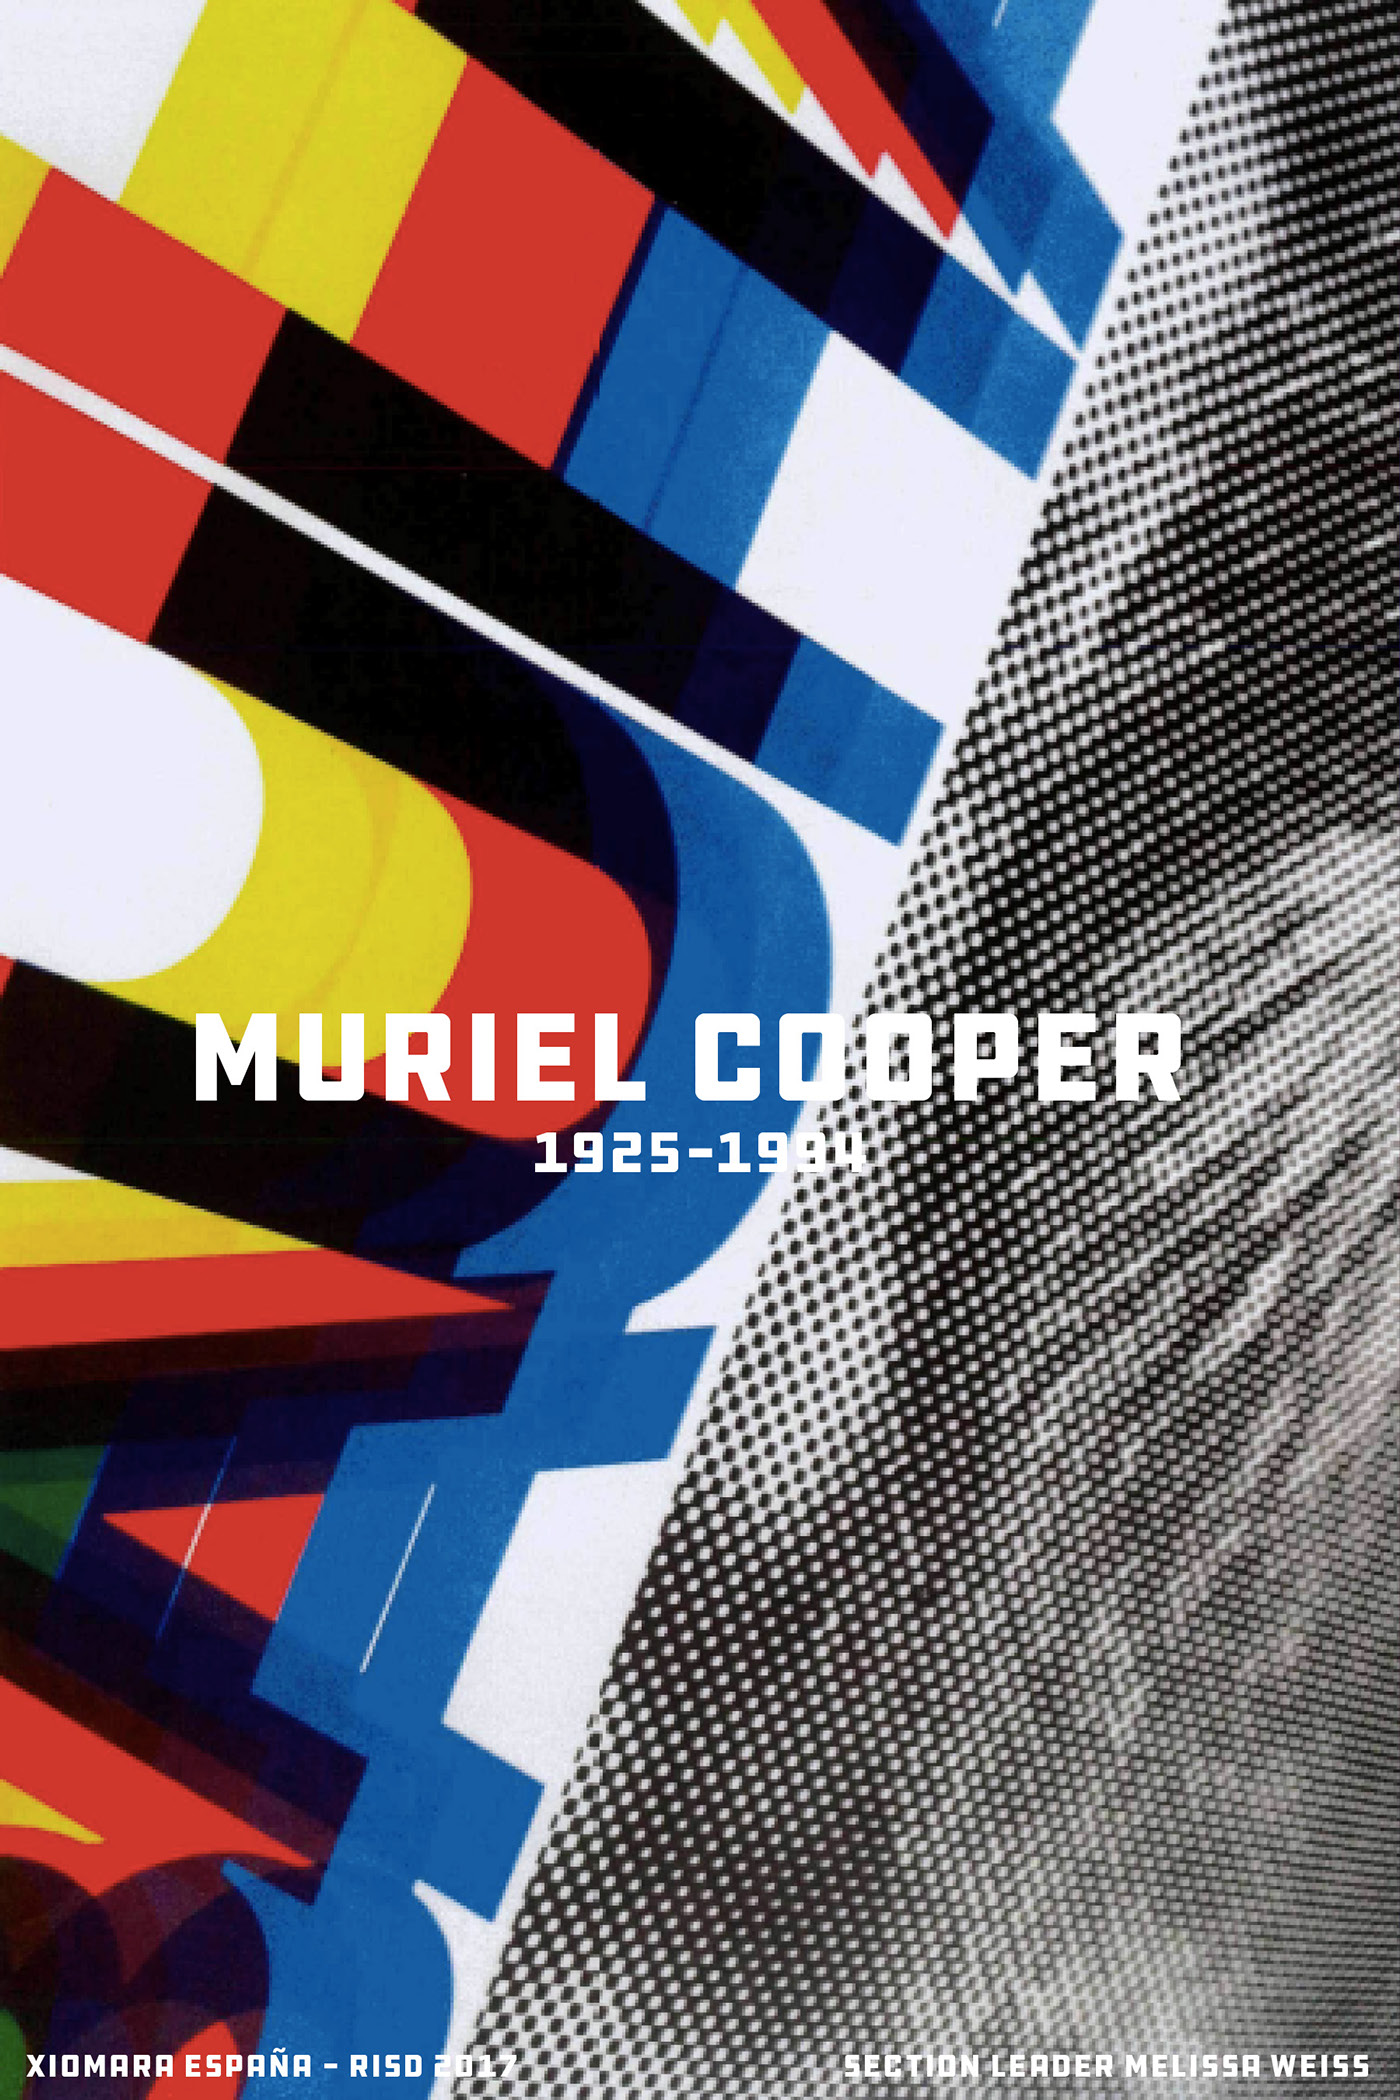 On the Careers of Muriel Cooper and Jenny Holzer & History of Graphic Design Accordion Timeline on RISD Portfolios